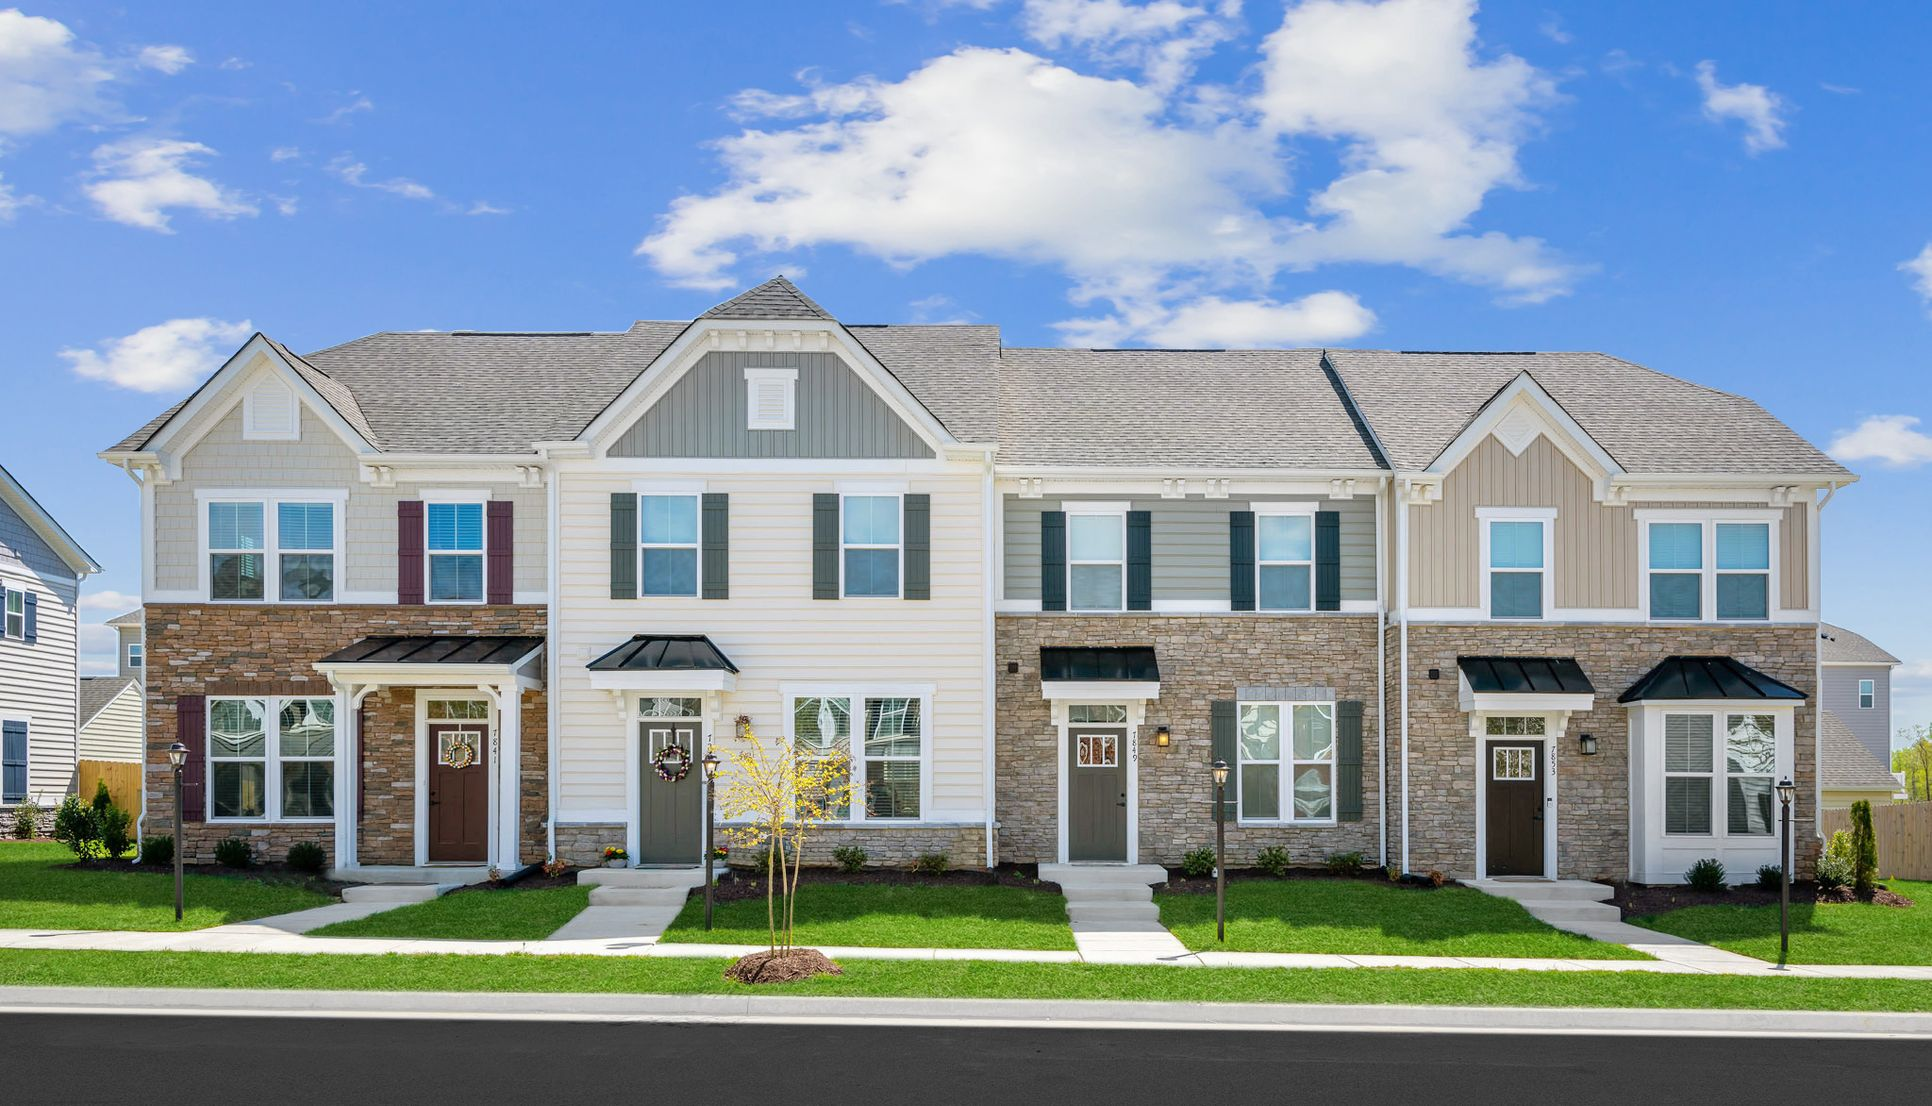 Grand Opening: Beautiful townhomes in Arbordale!:Settle into this highly sought after Williamsburg community. New, 2-story, 3-bedroom, maintenance-free townhomesnow open in Arbordale in York County!Join the VIP Listto schedule your visit.